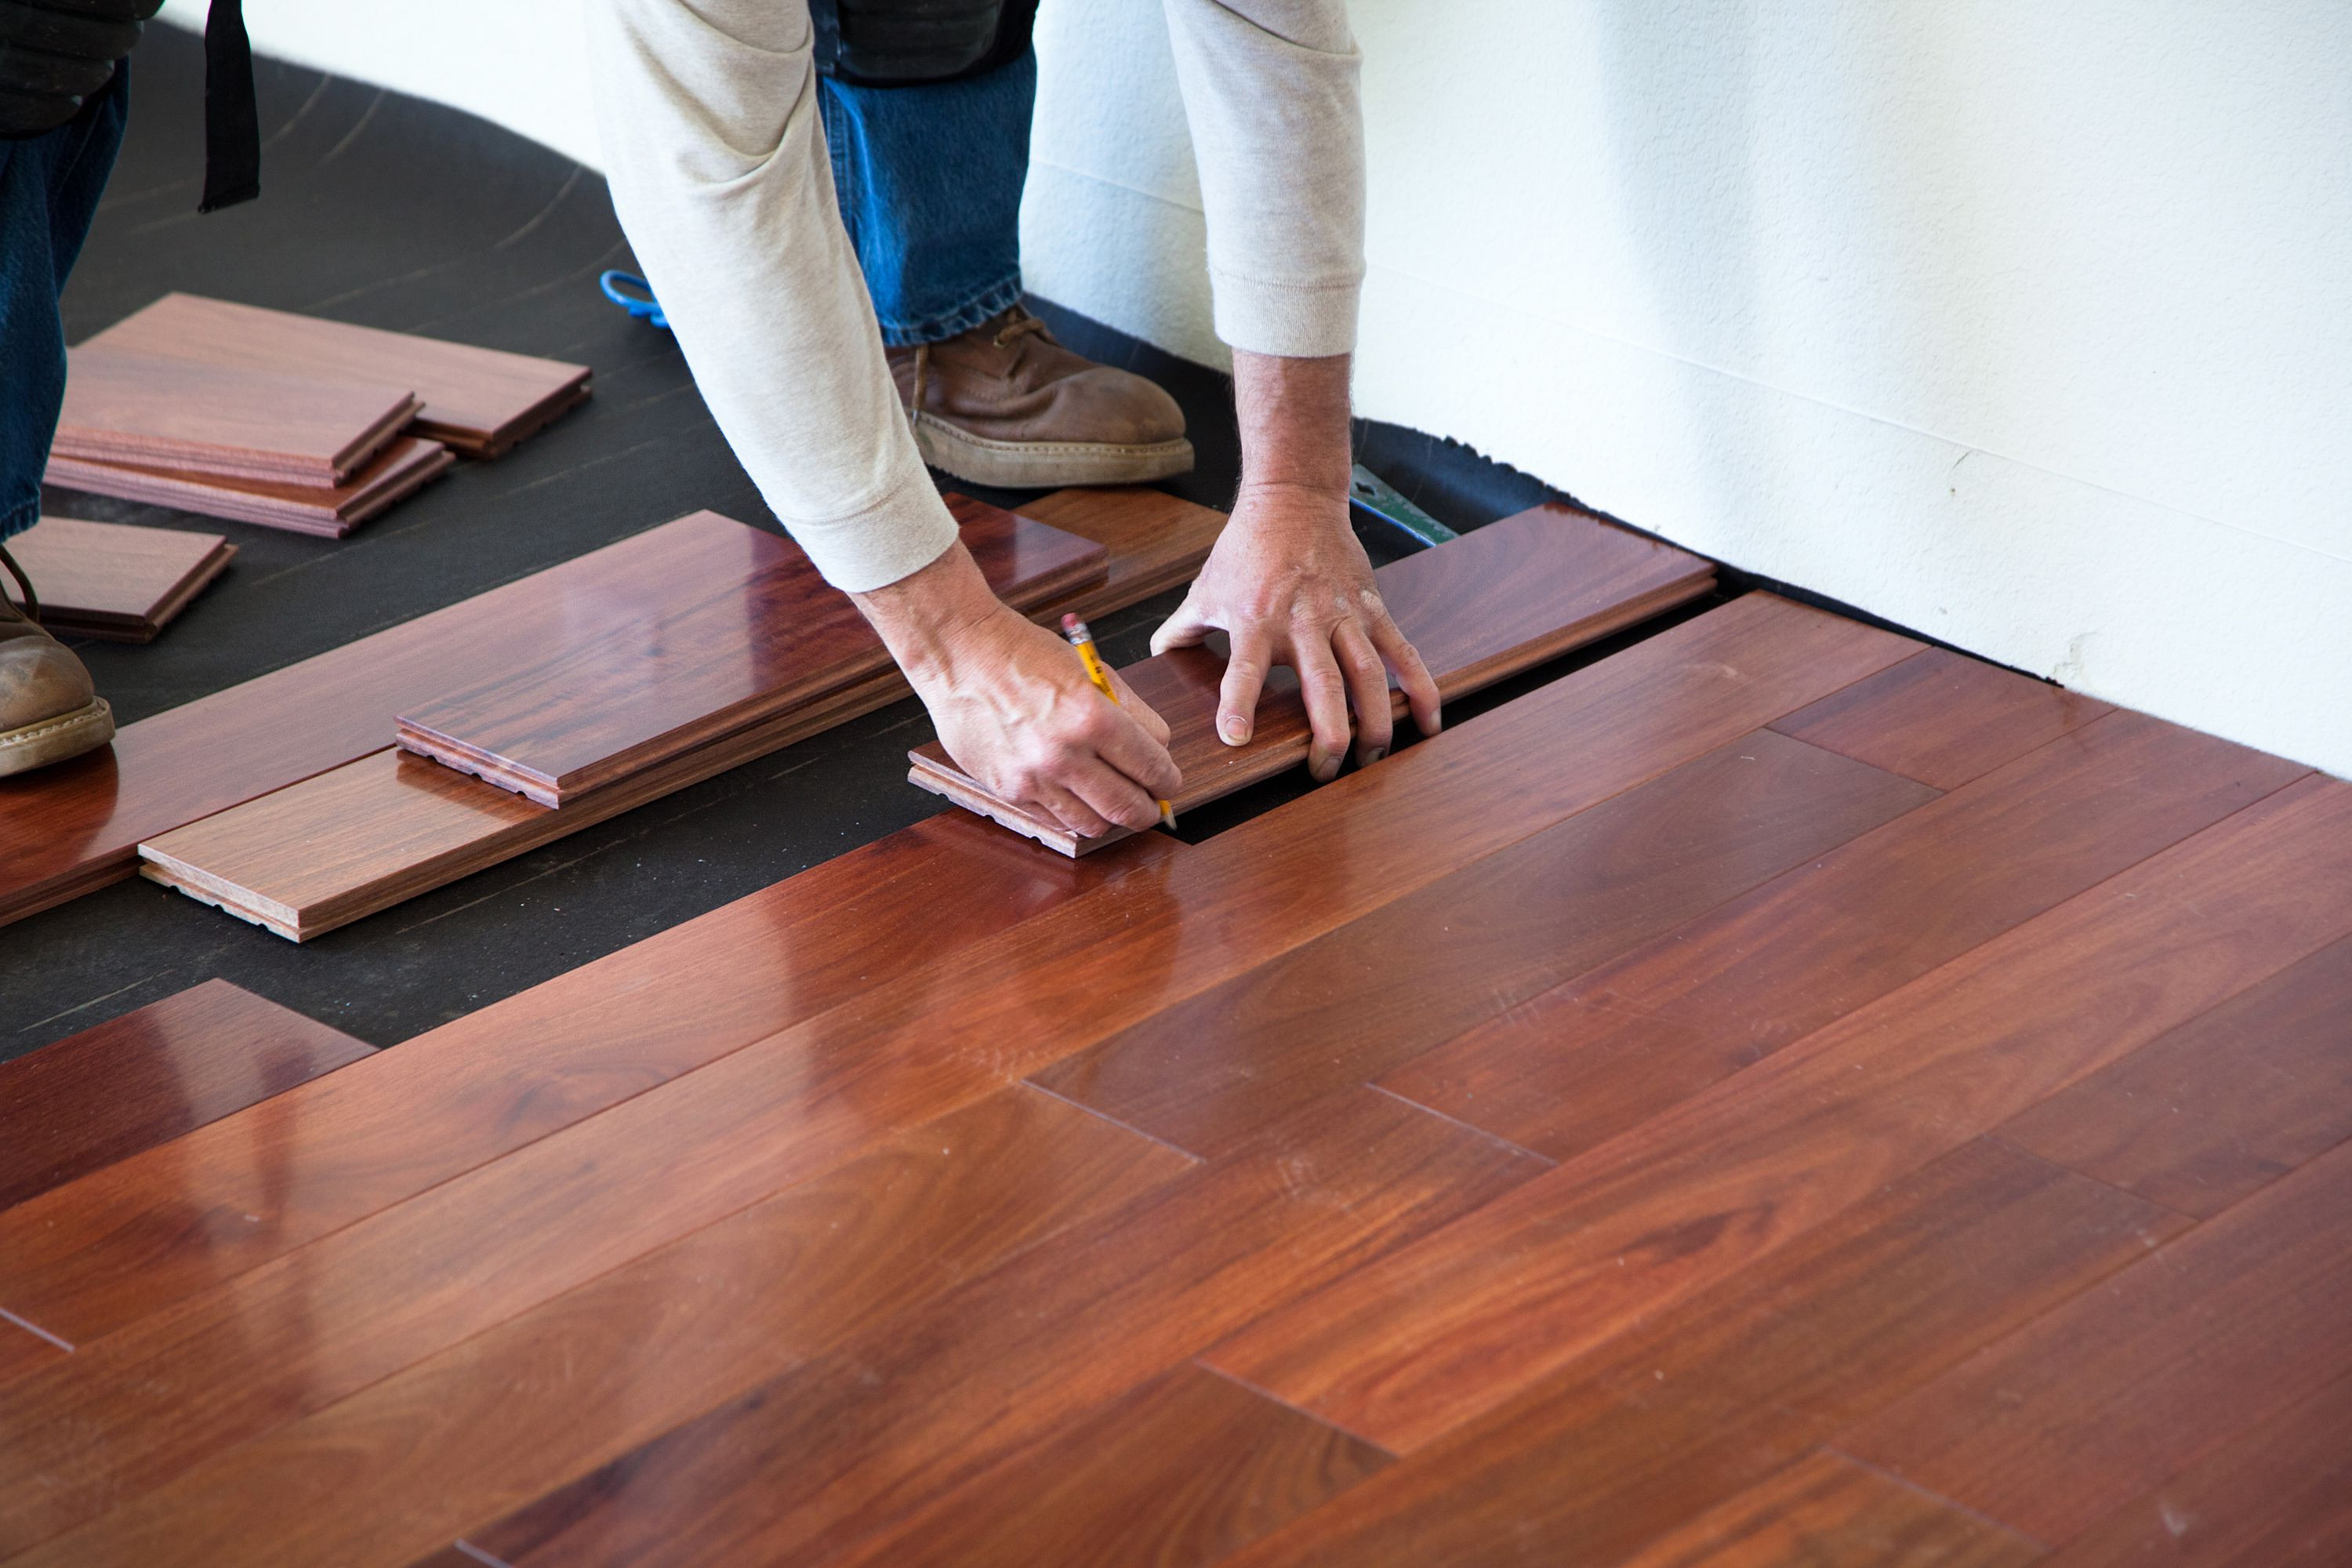 hardwood floor foam tiles of the subfloor is the foundation of a good floor pertaining to installing hardwood floor 170040982 582b748c5f9b58d5b17d0c58